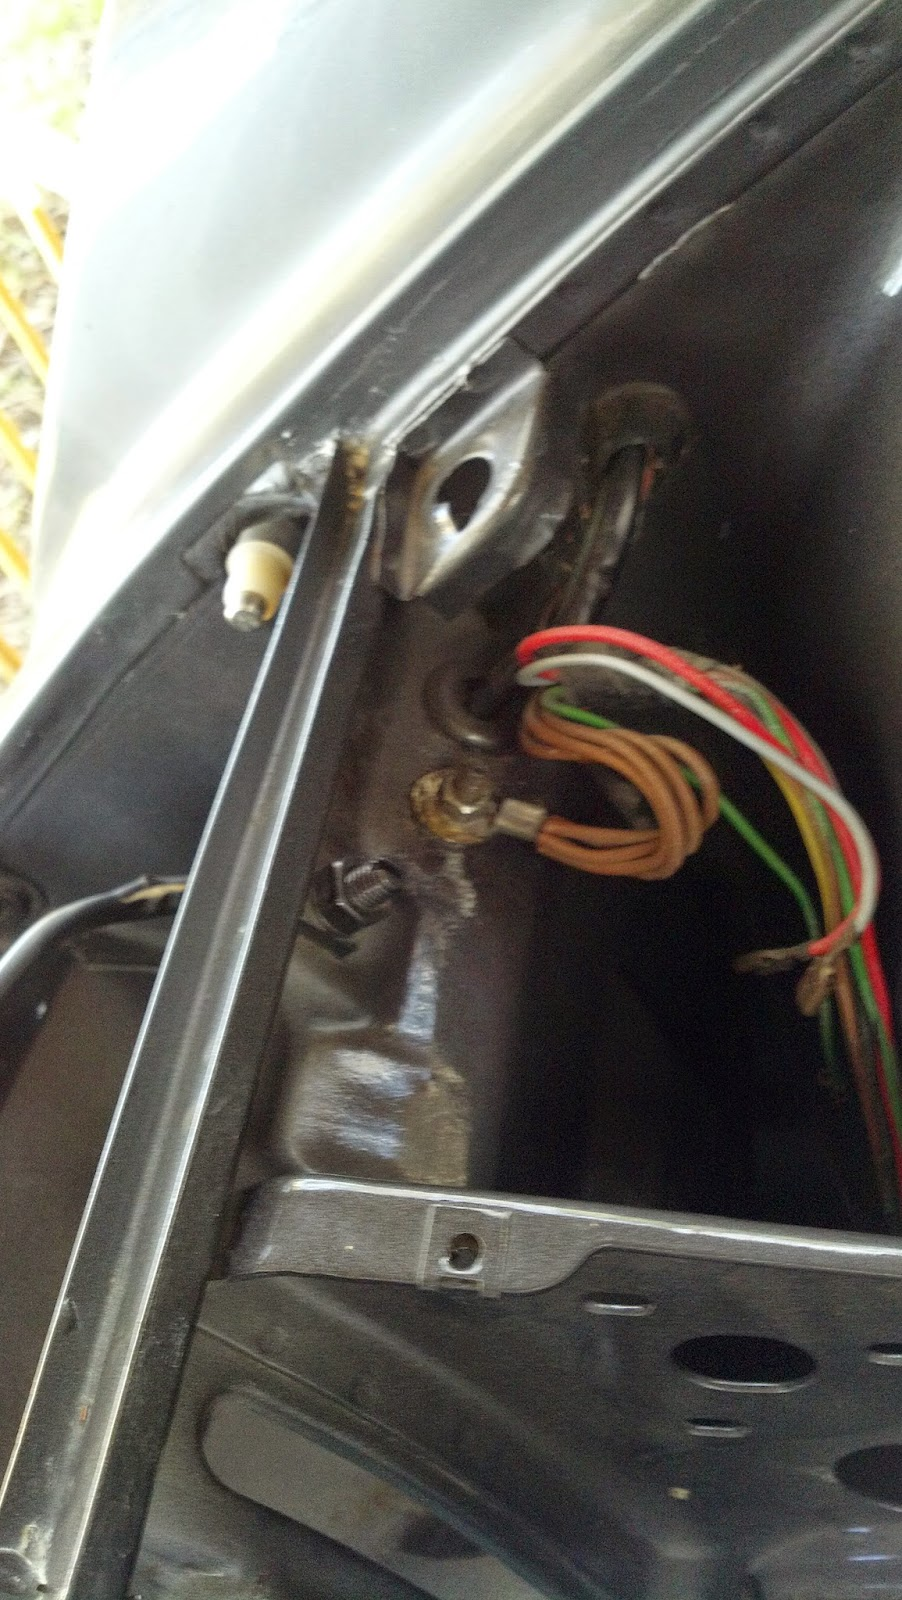 medium resolution of mount the grounding harness and the headlight motor ground wire not shown yet to the stud